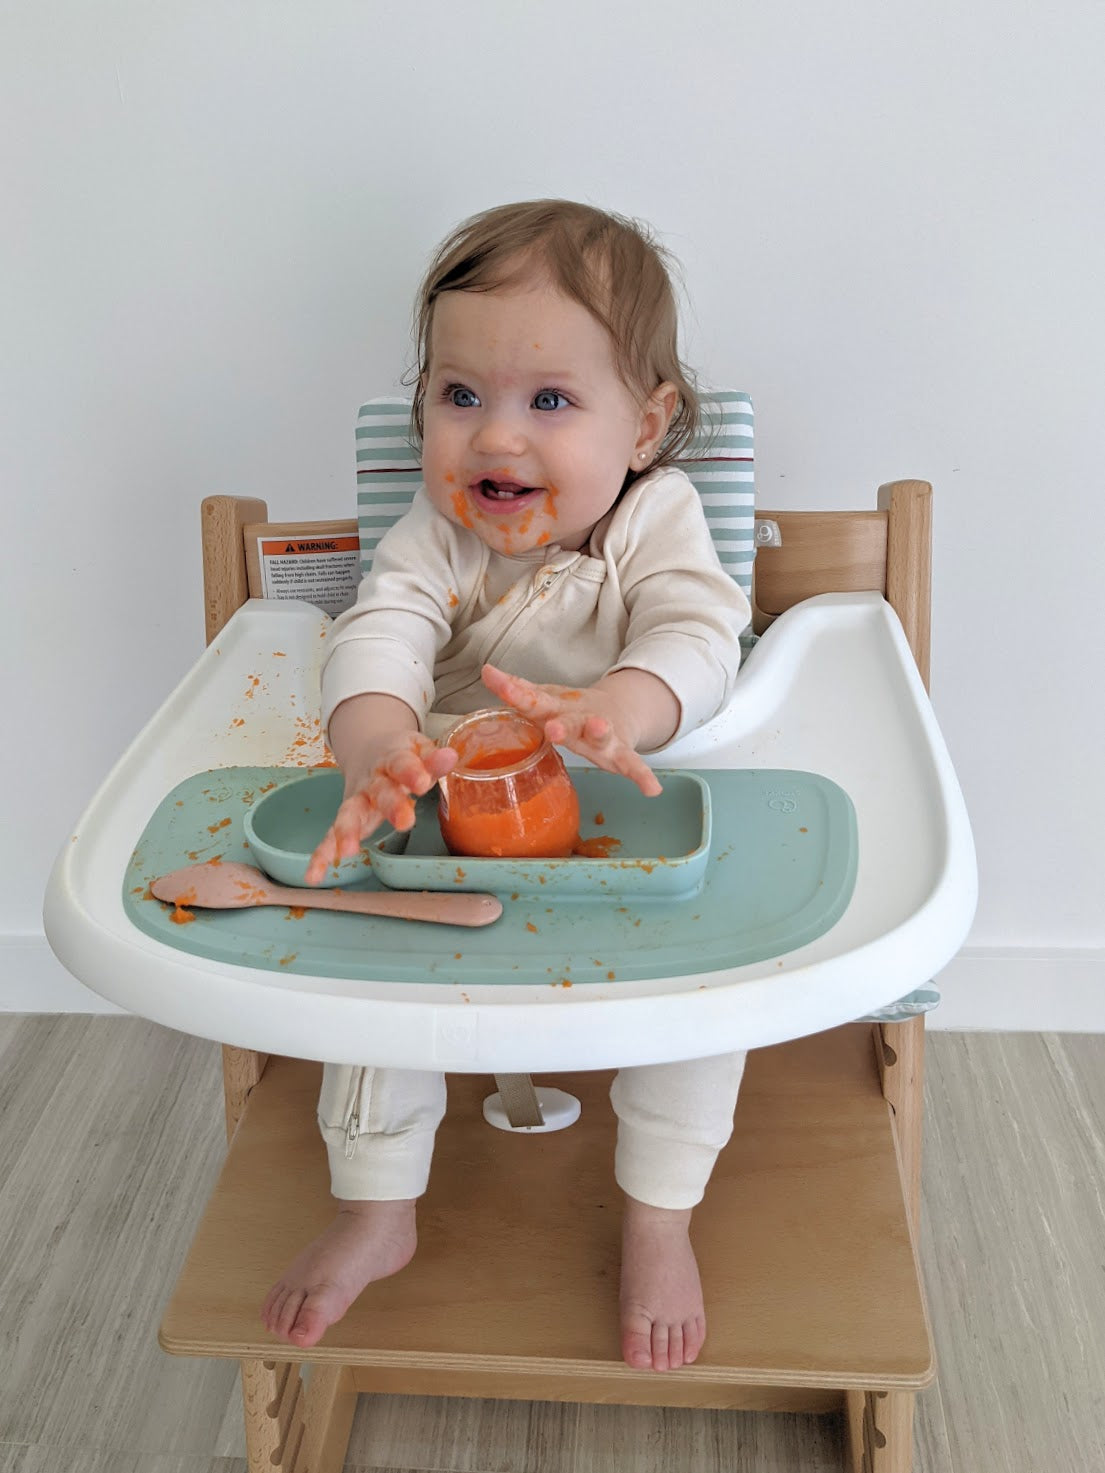 TØY Baby Clothes Yumi Baby Food